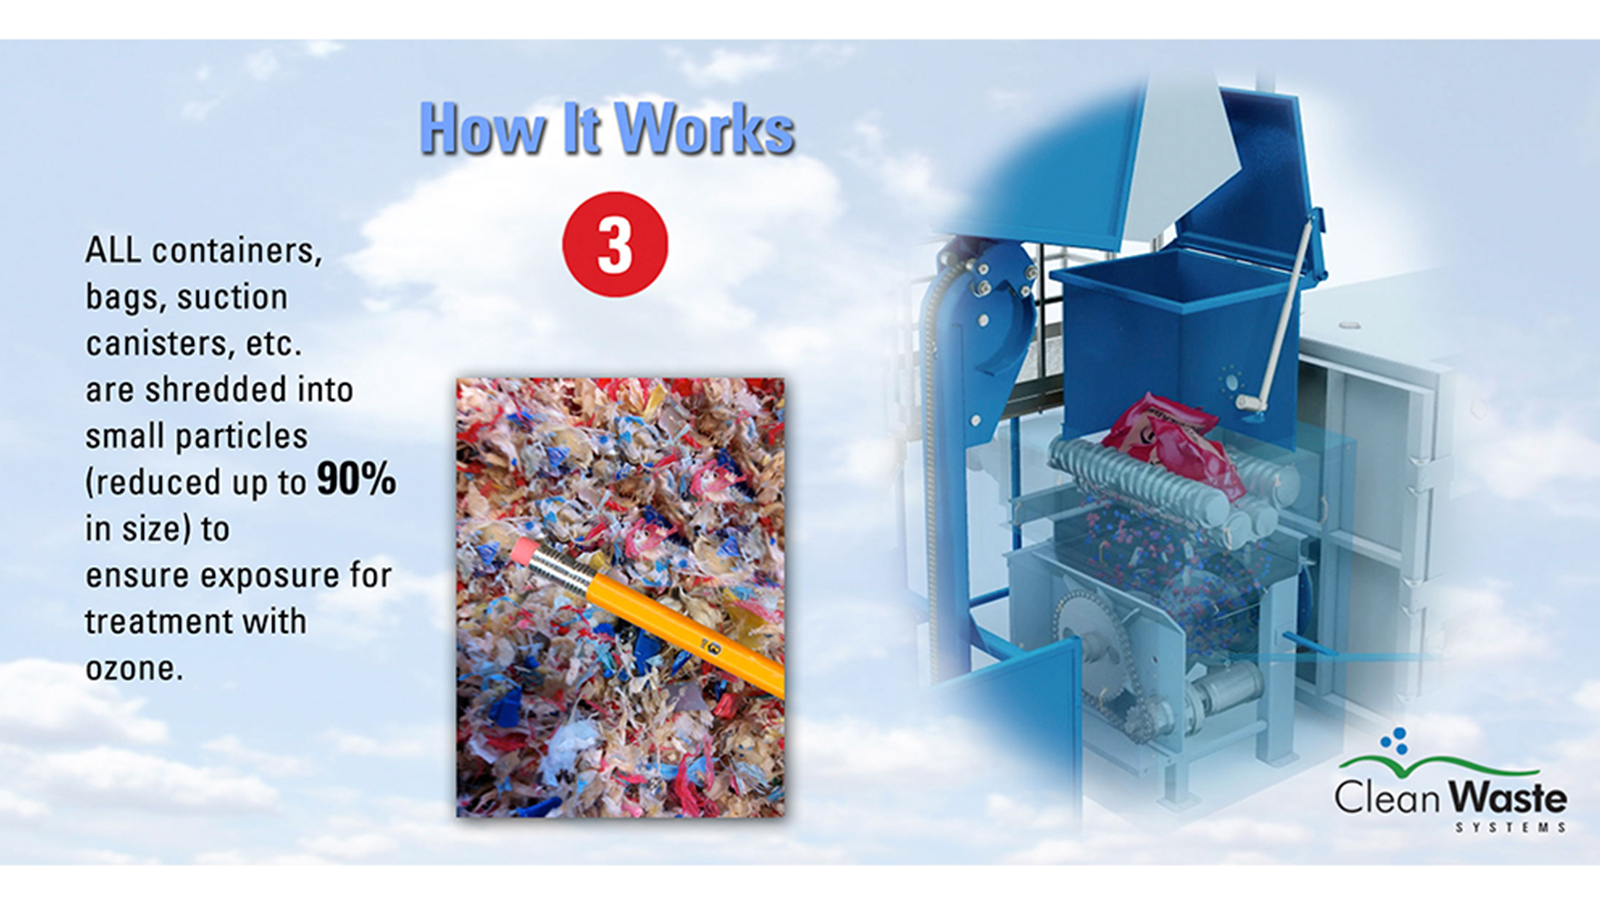 Cleanwaste How it Works - 3